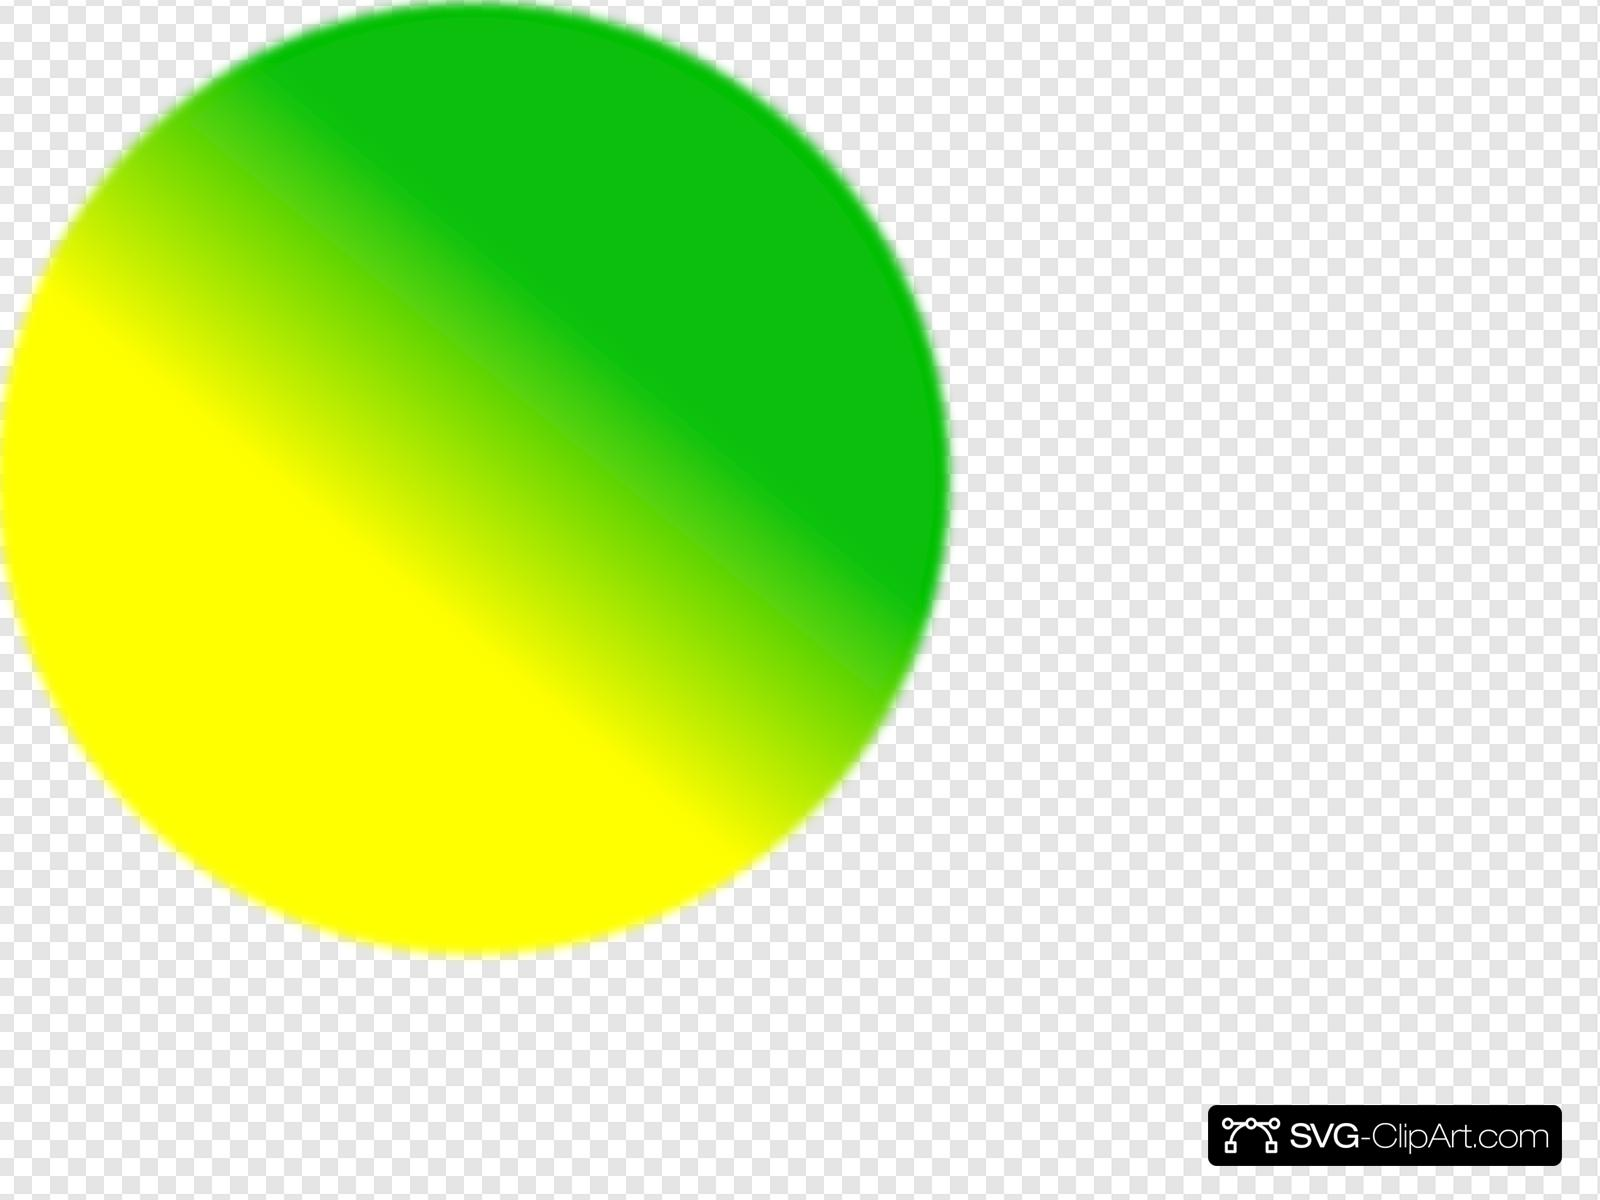 Yellow Green Transition Clip art, Icon and SVG.